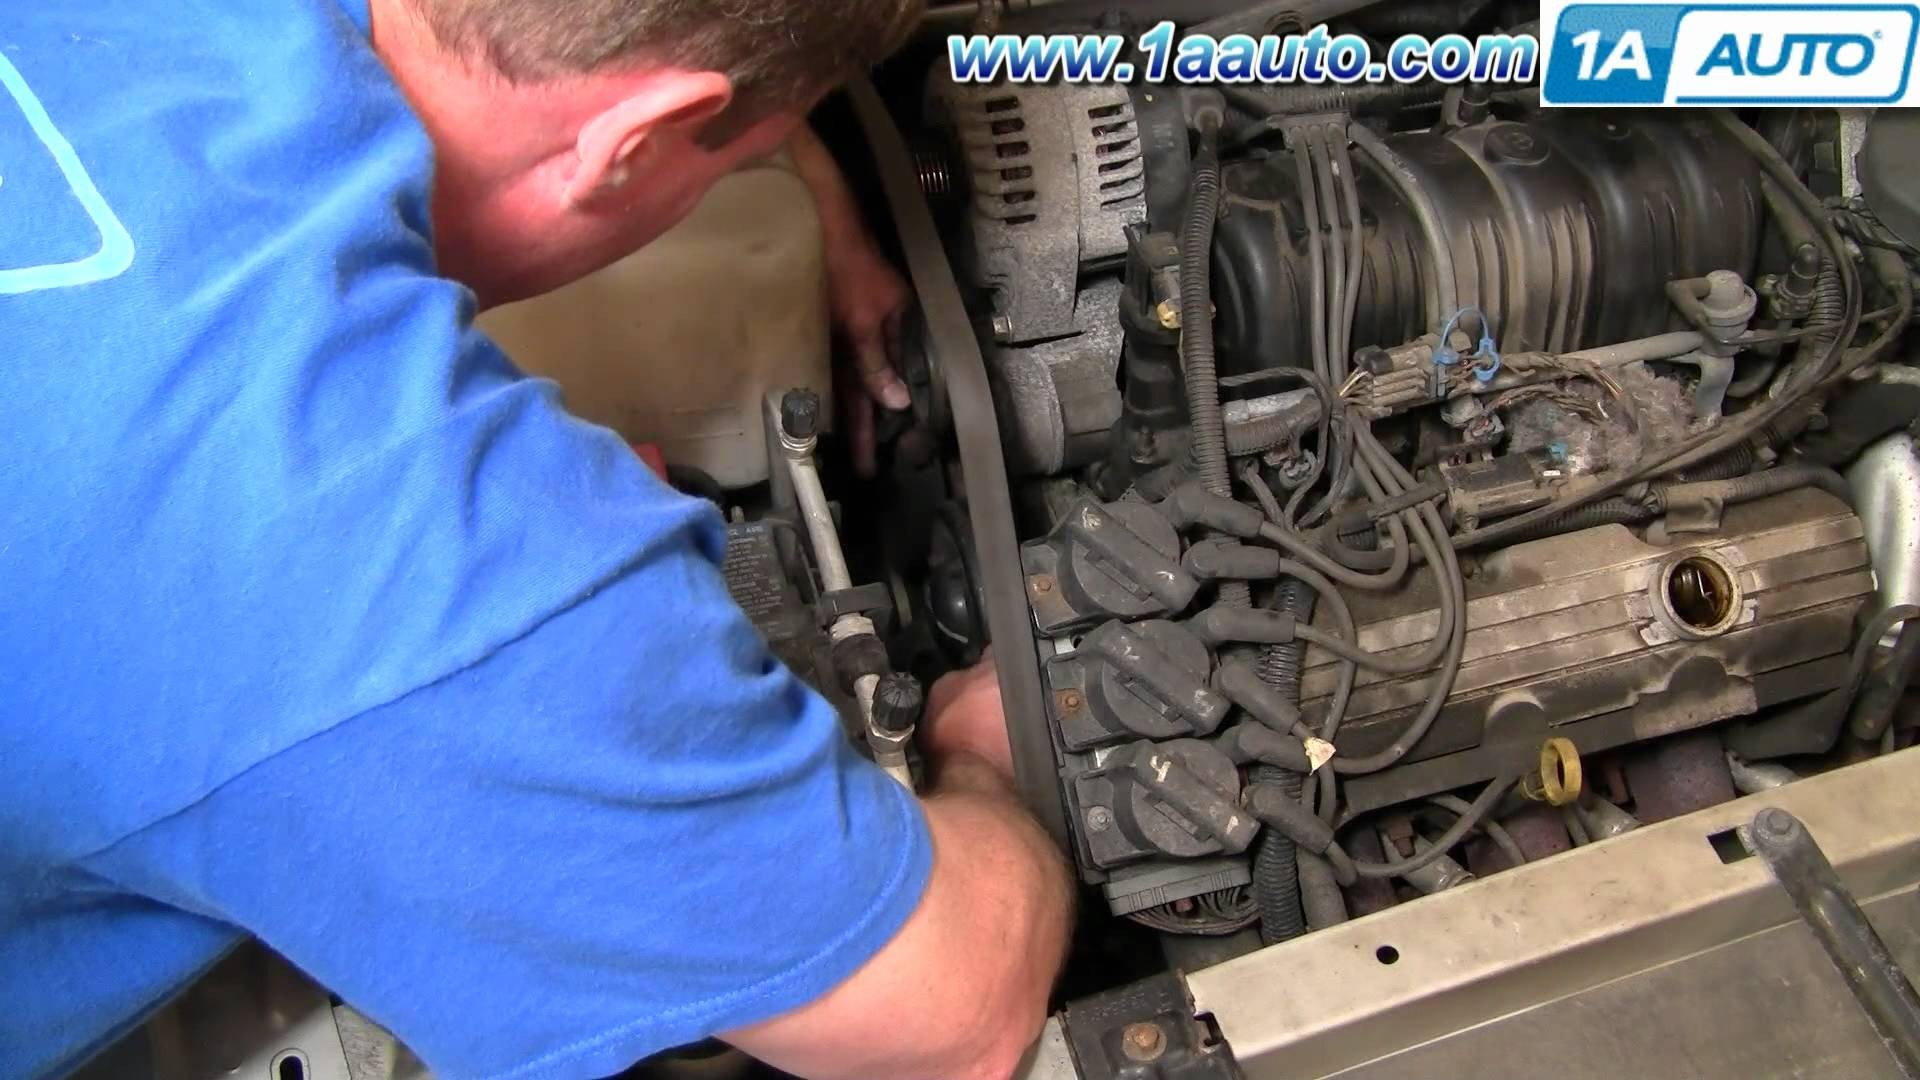 How To Install Repair Replace Serpentine Engine Belt Buick Lesabre 3 8L 00  05 1AAuto